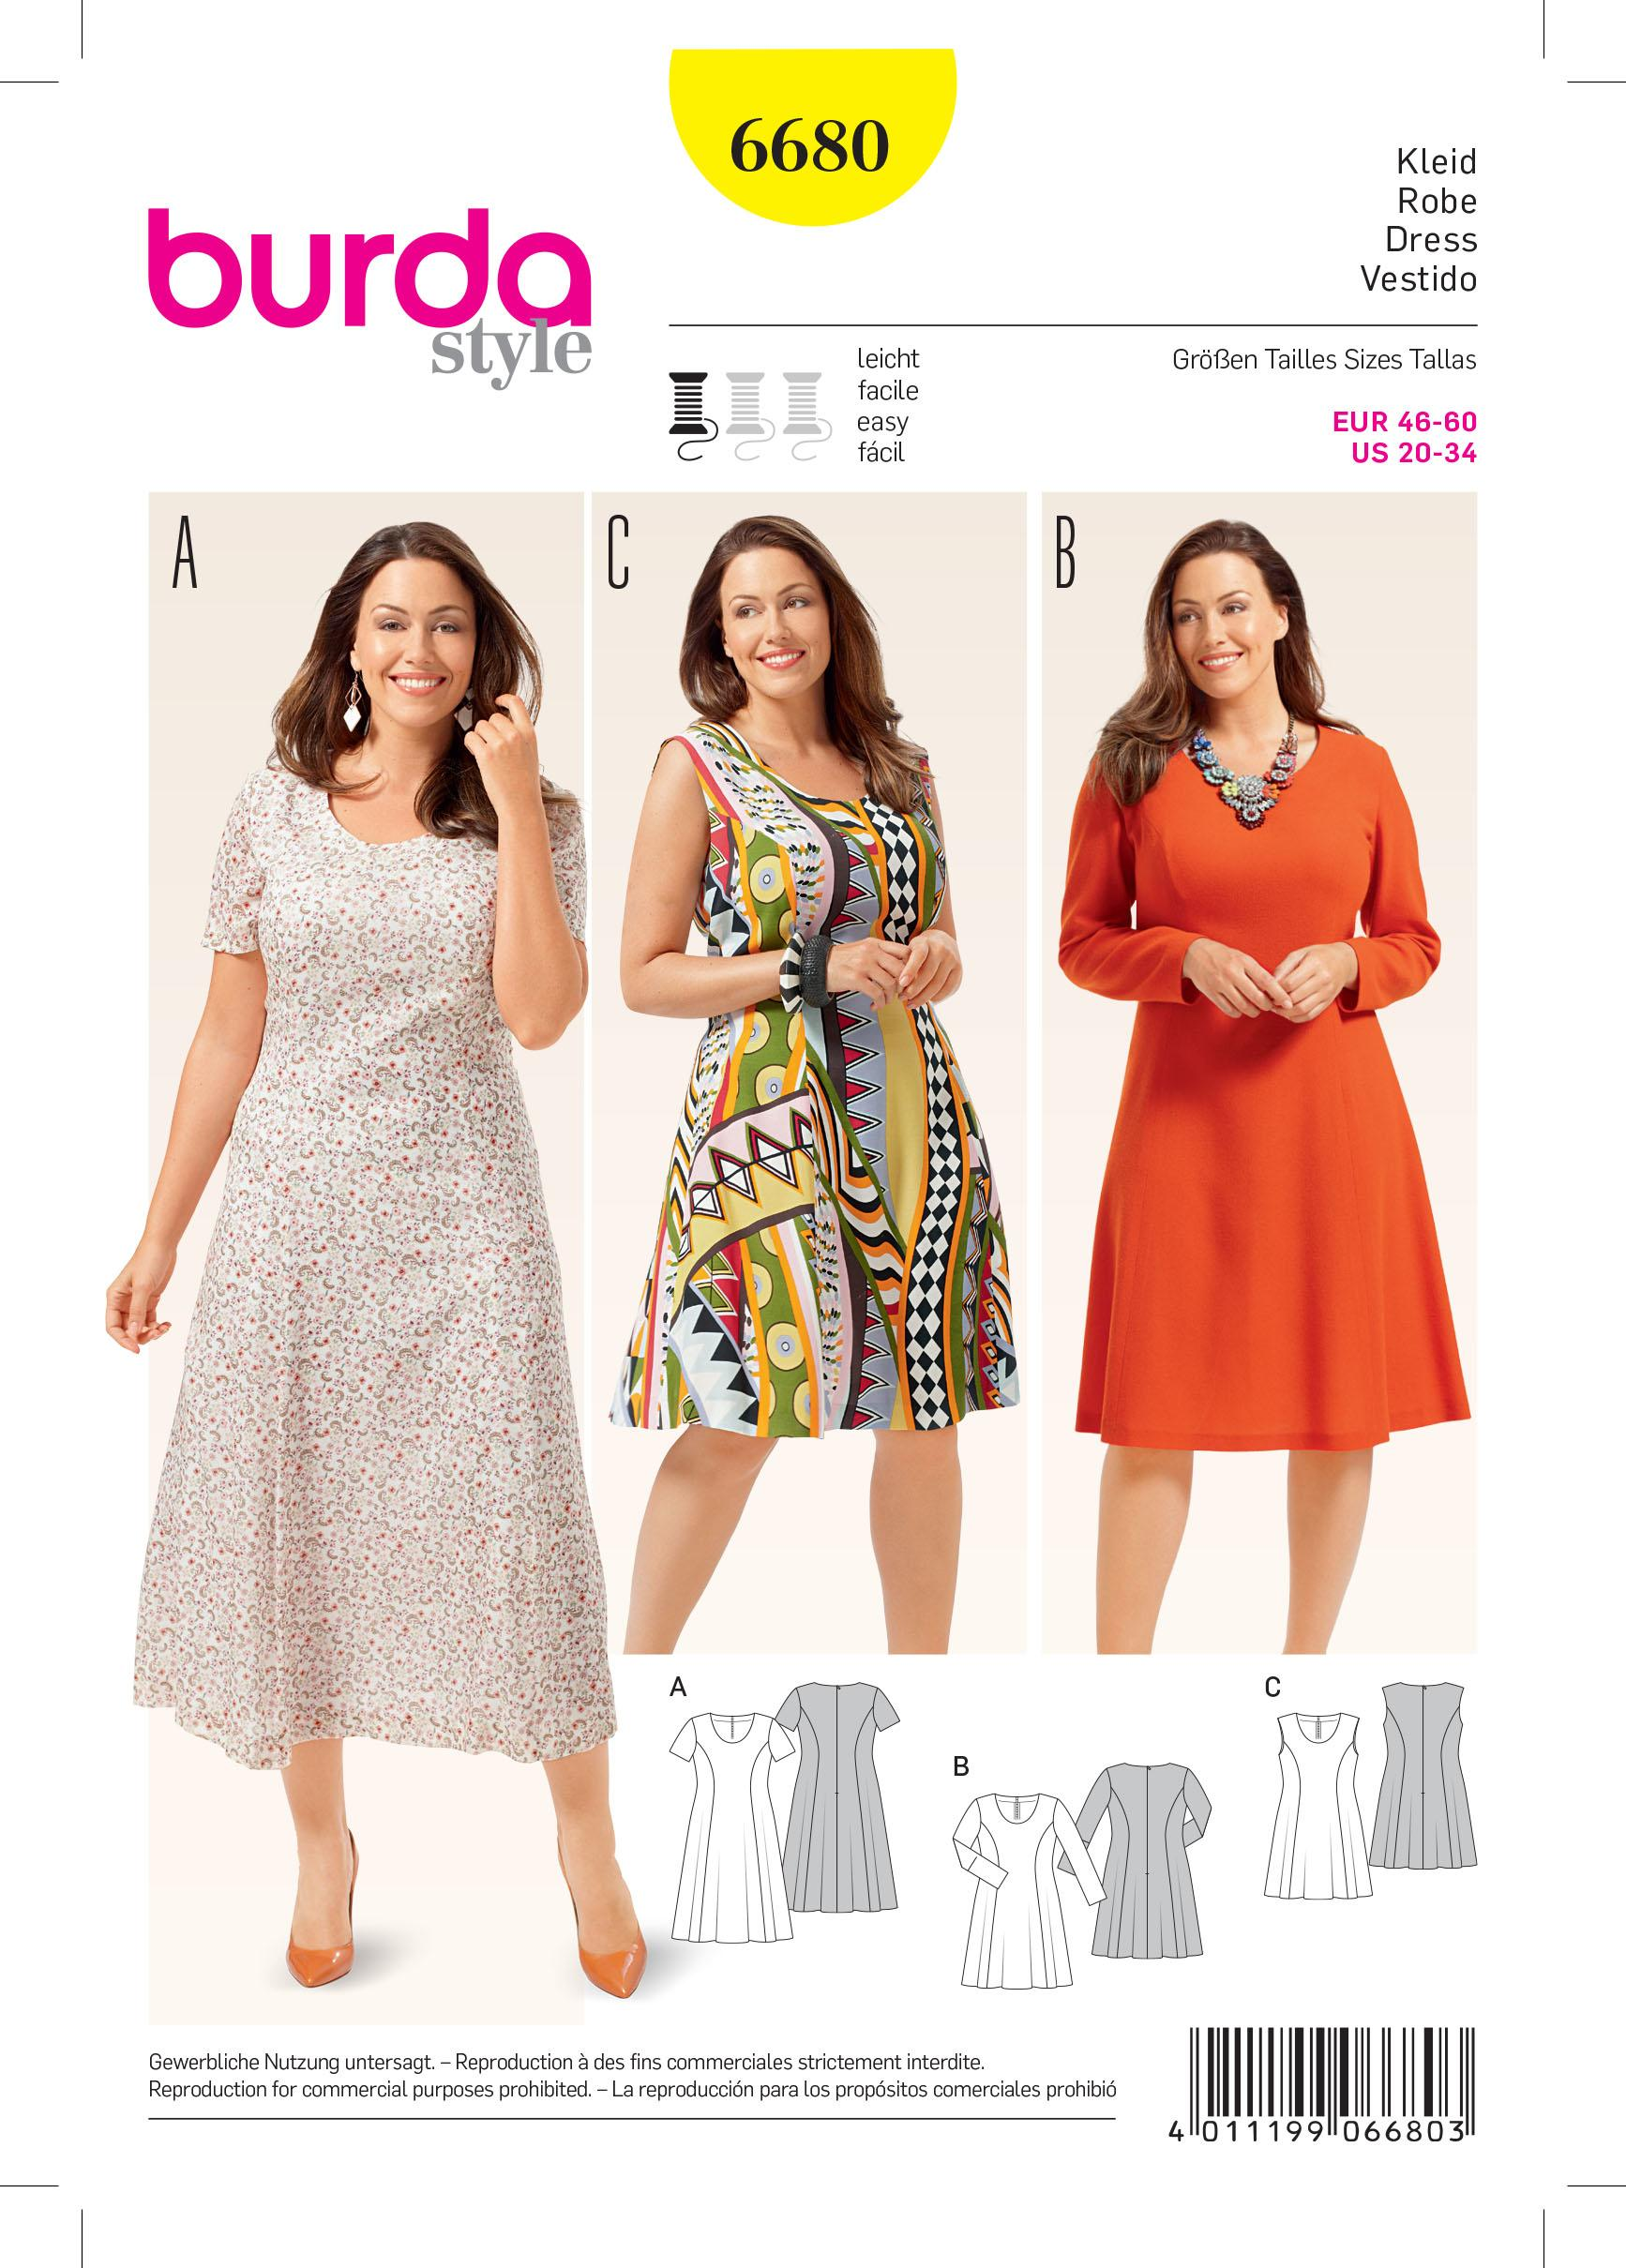 Burda B6680 Women's Dress Sewing Pattern